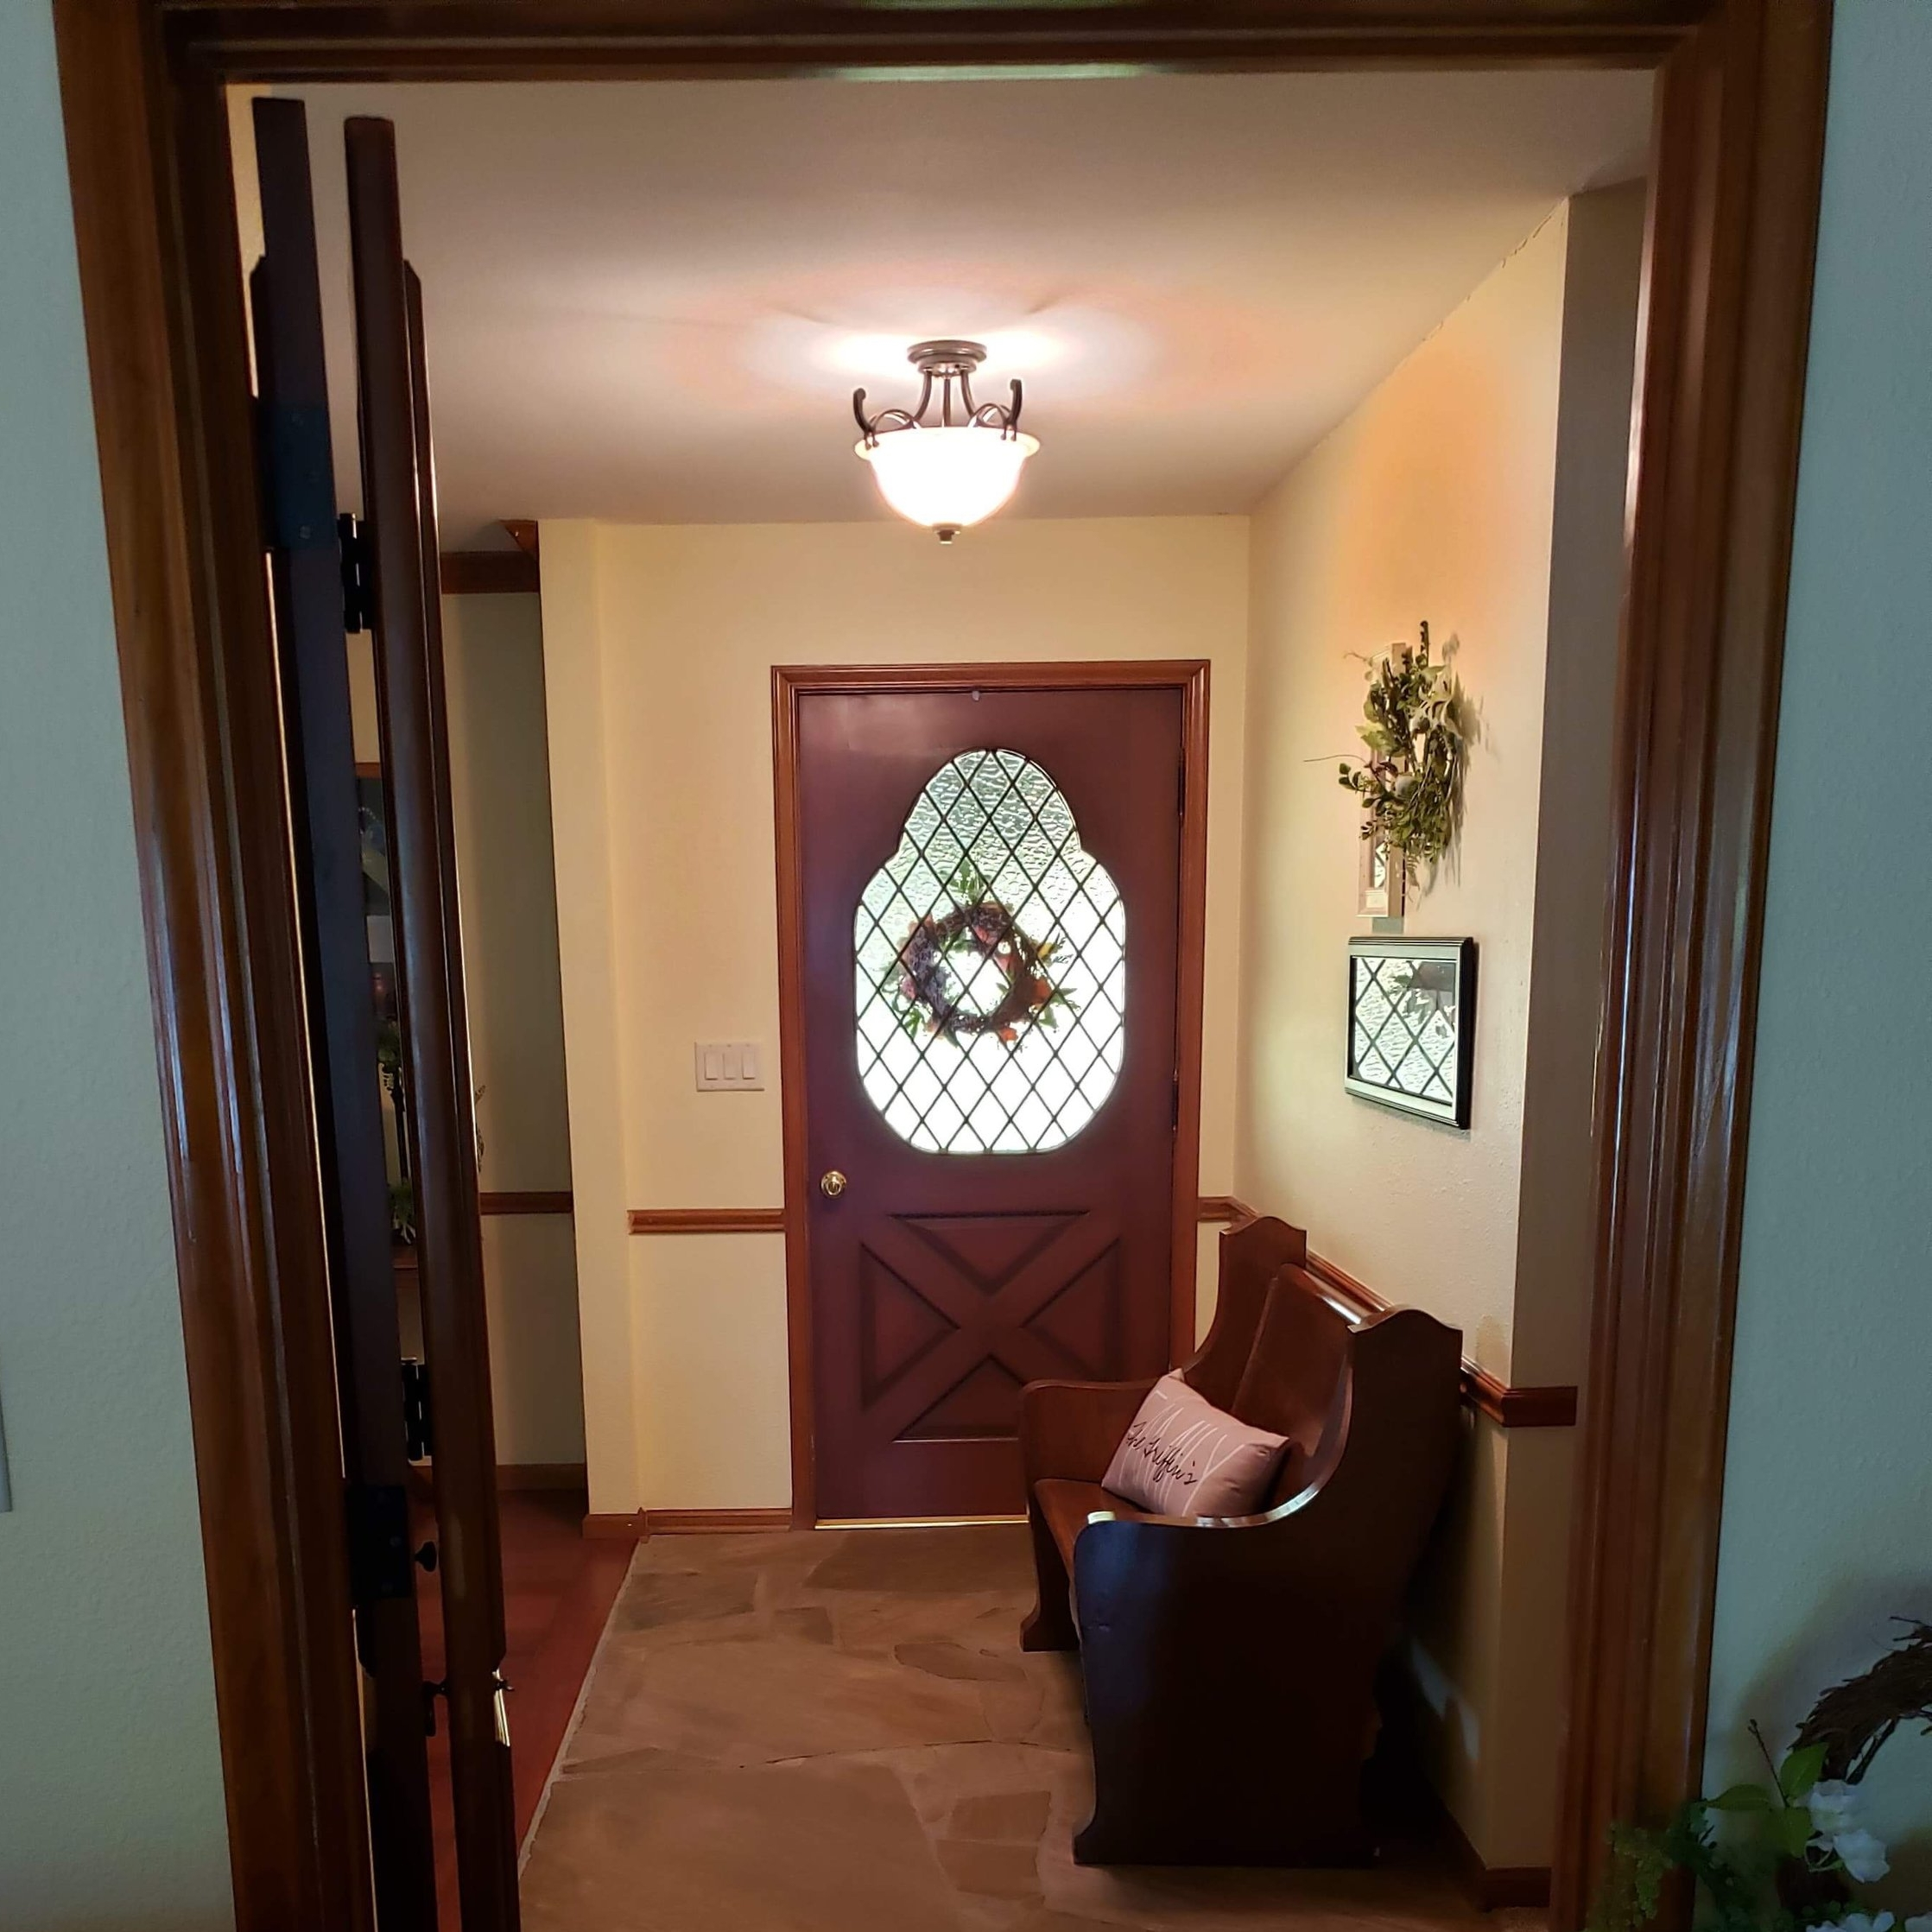 ENTRY AREA FROM FAMILY ROOM